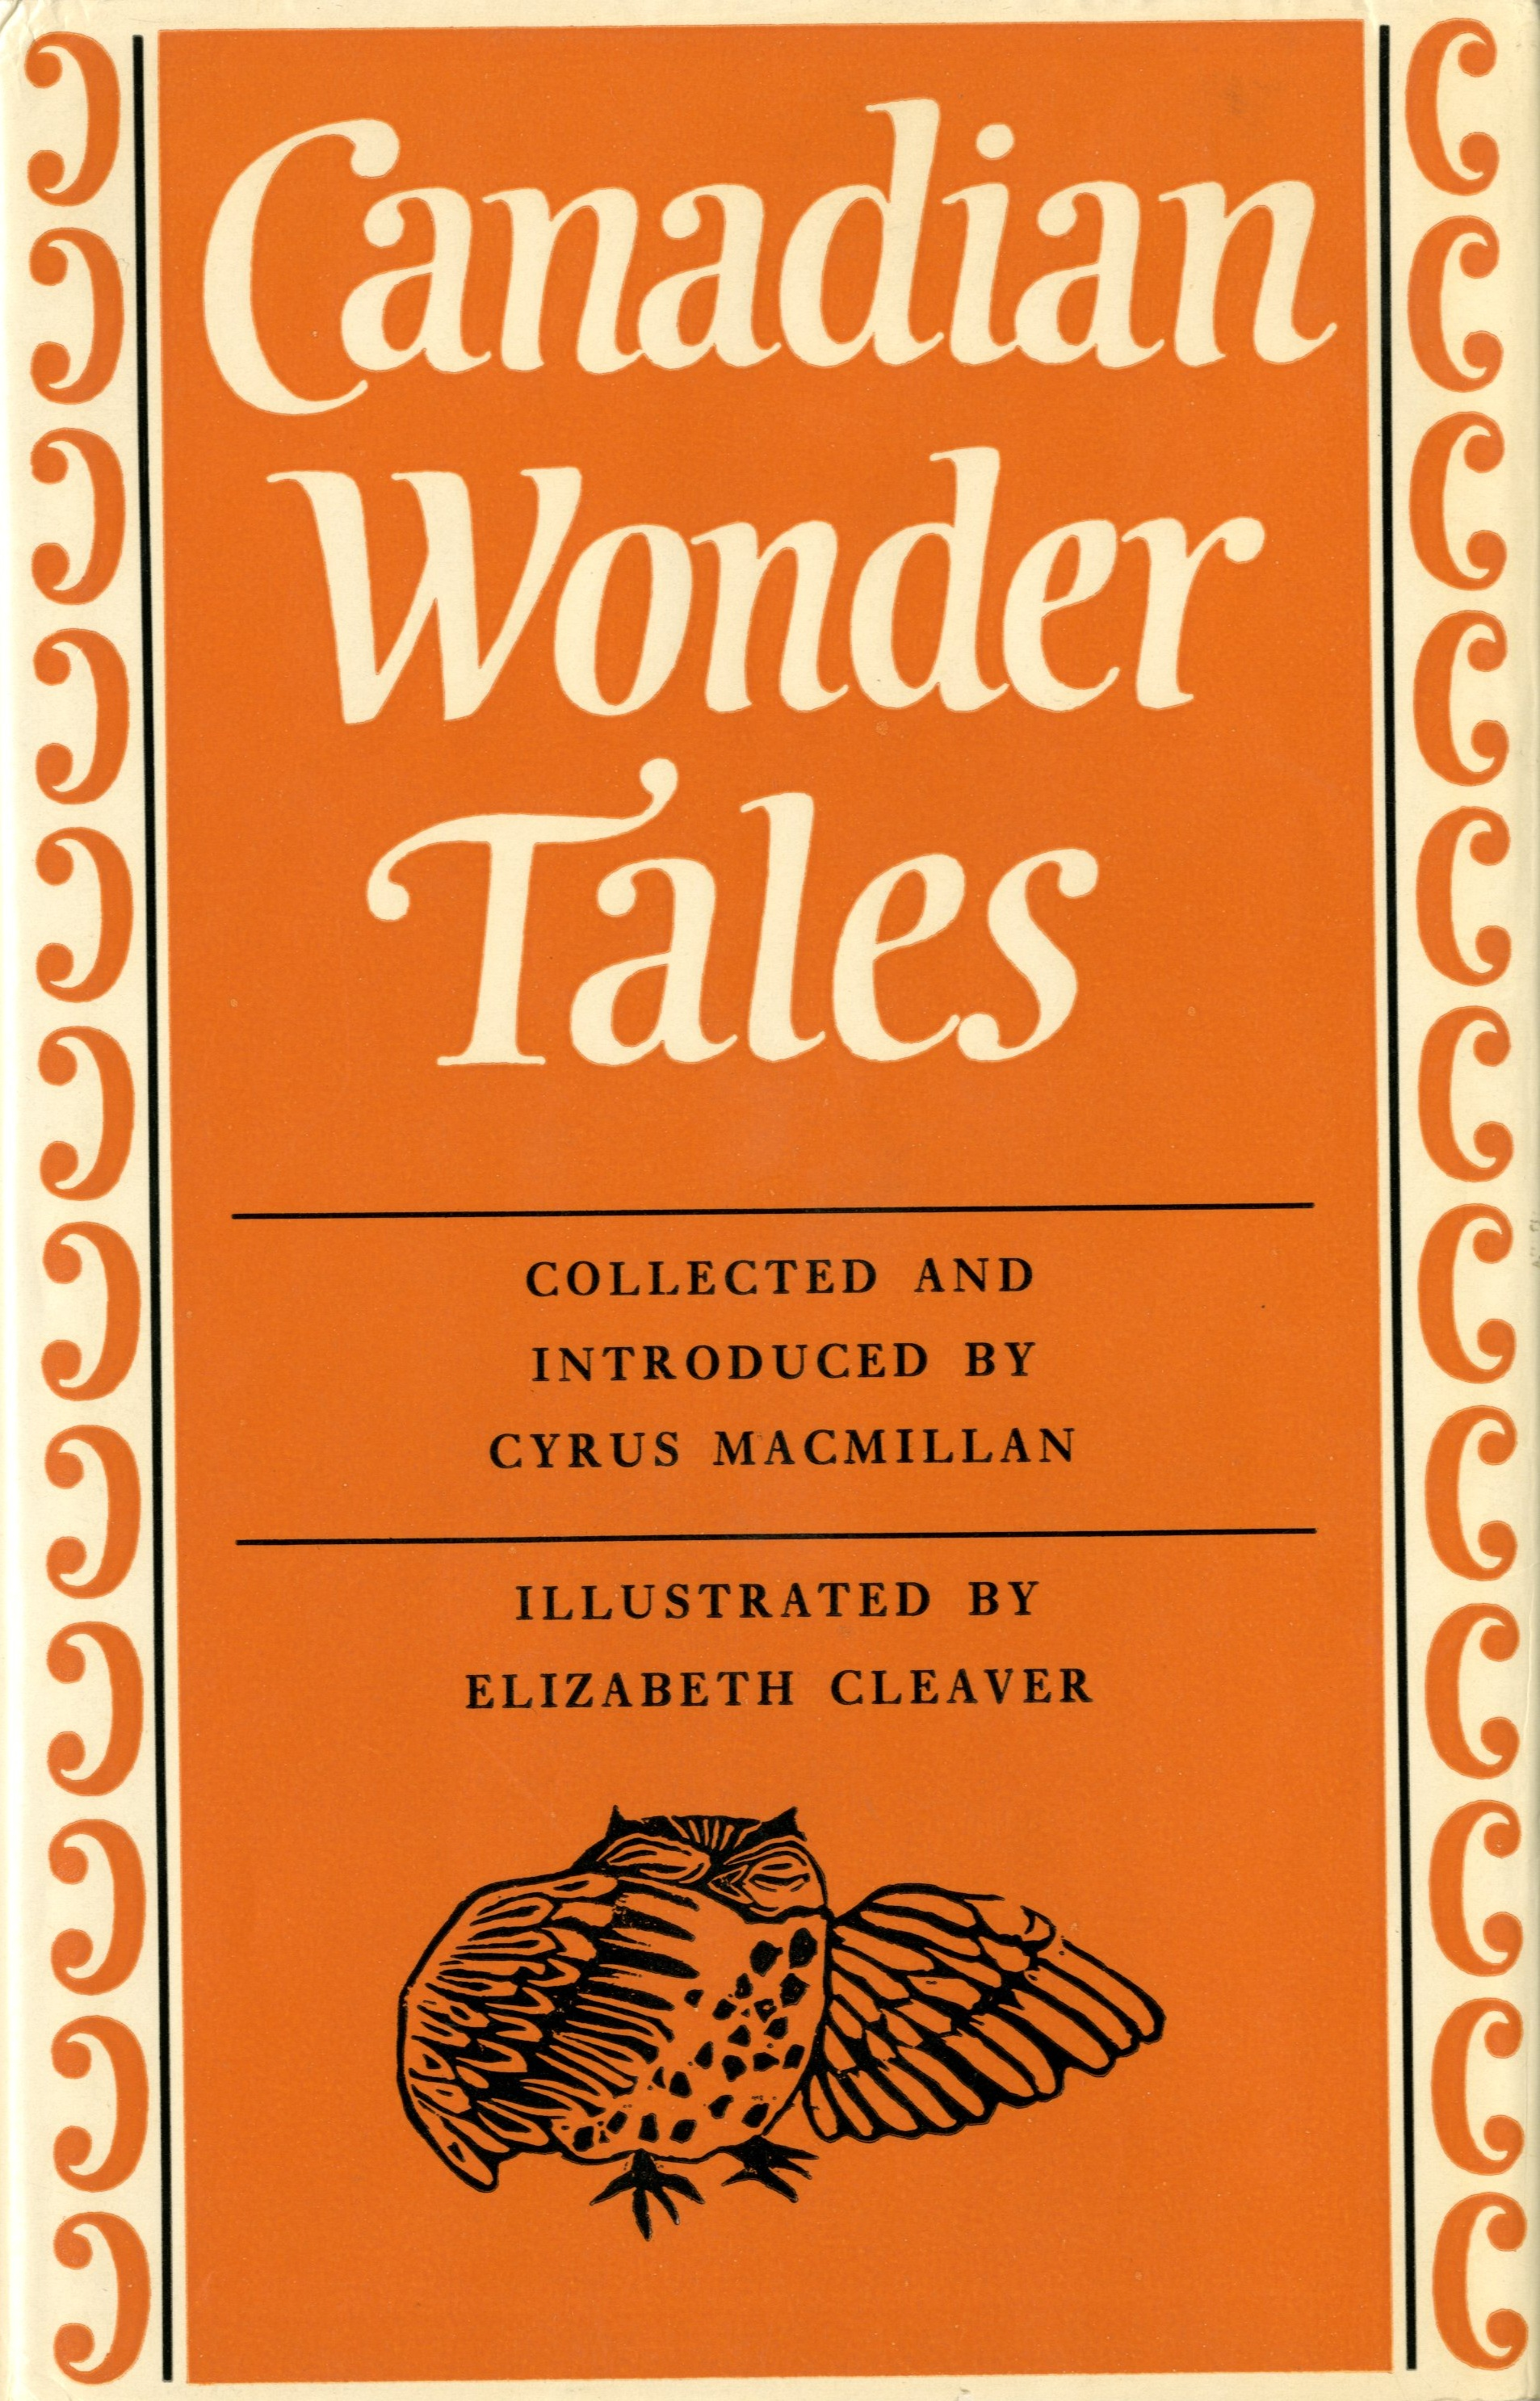 <em> Canadian Wonder Tales </em> cover page